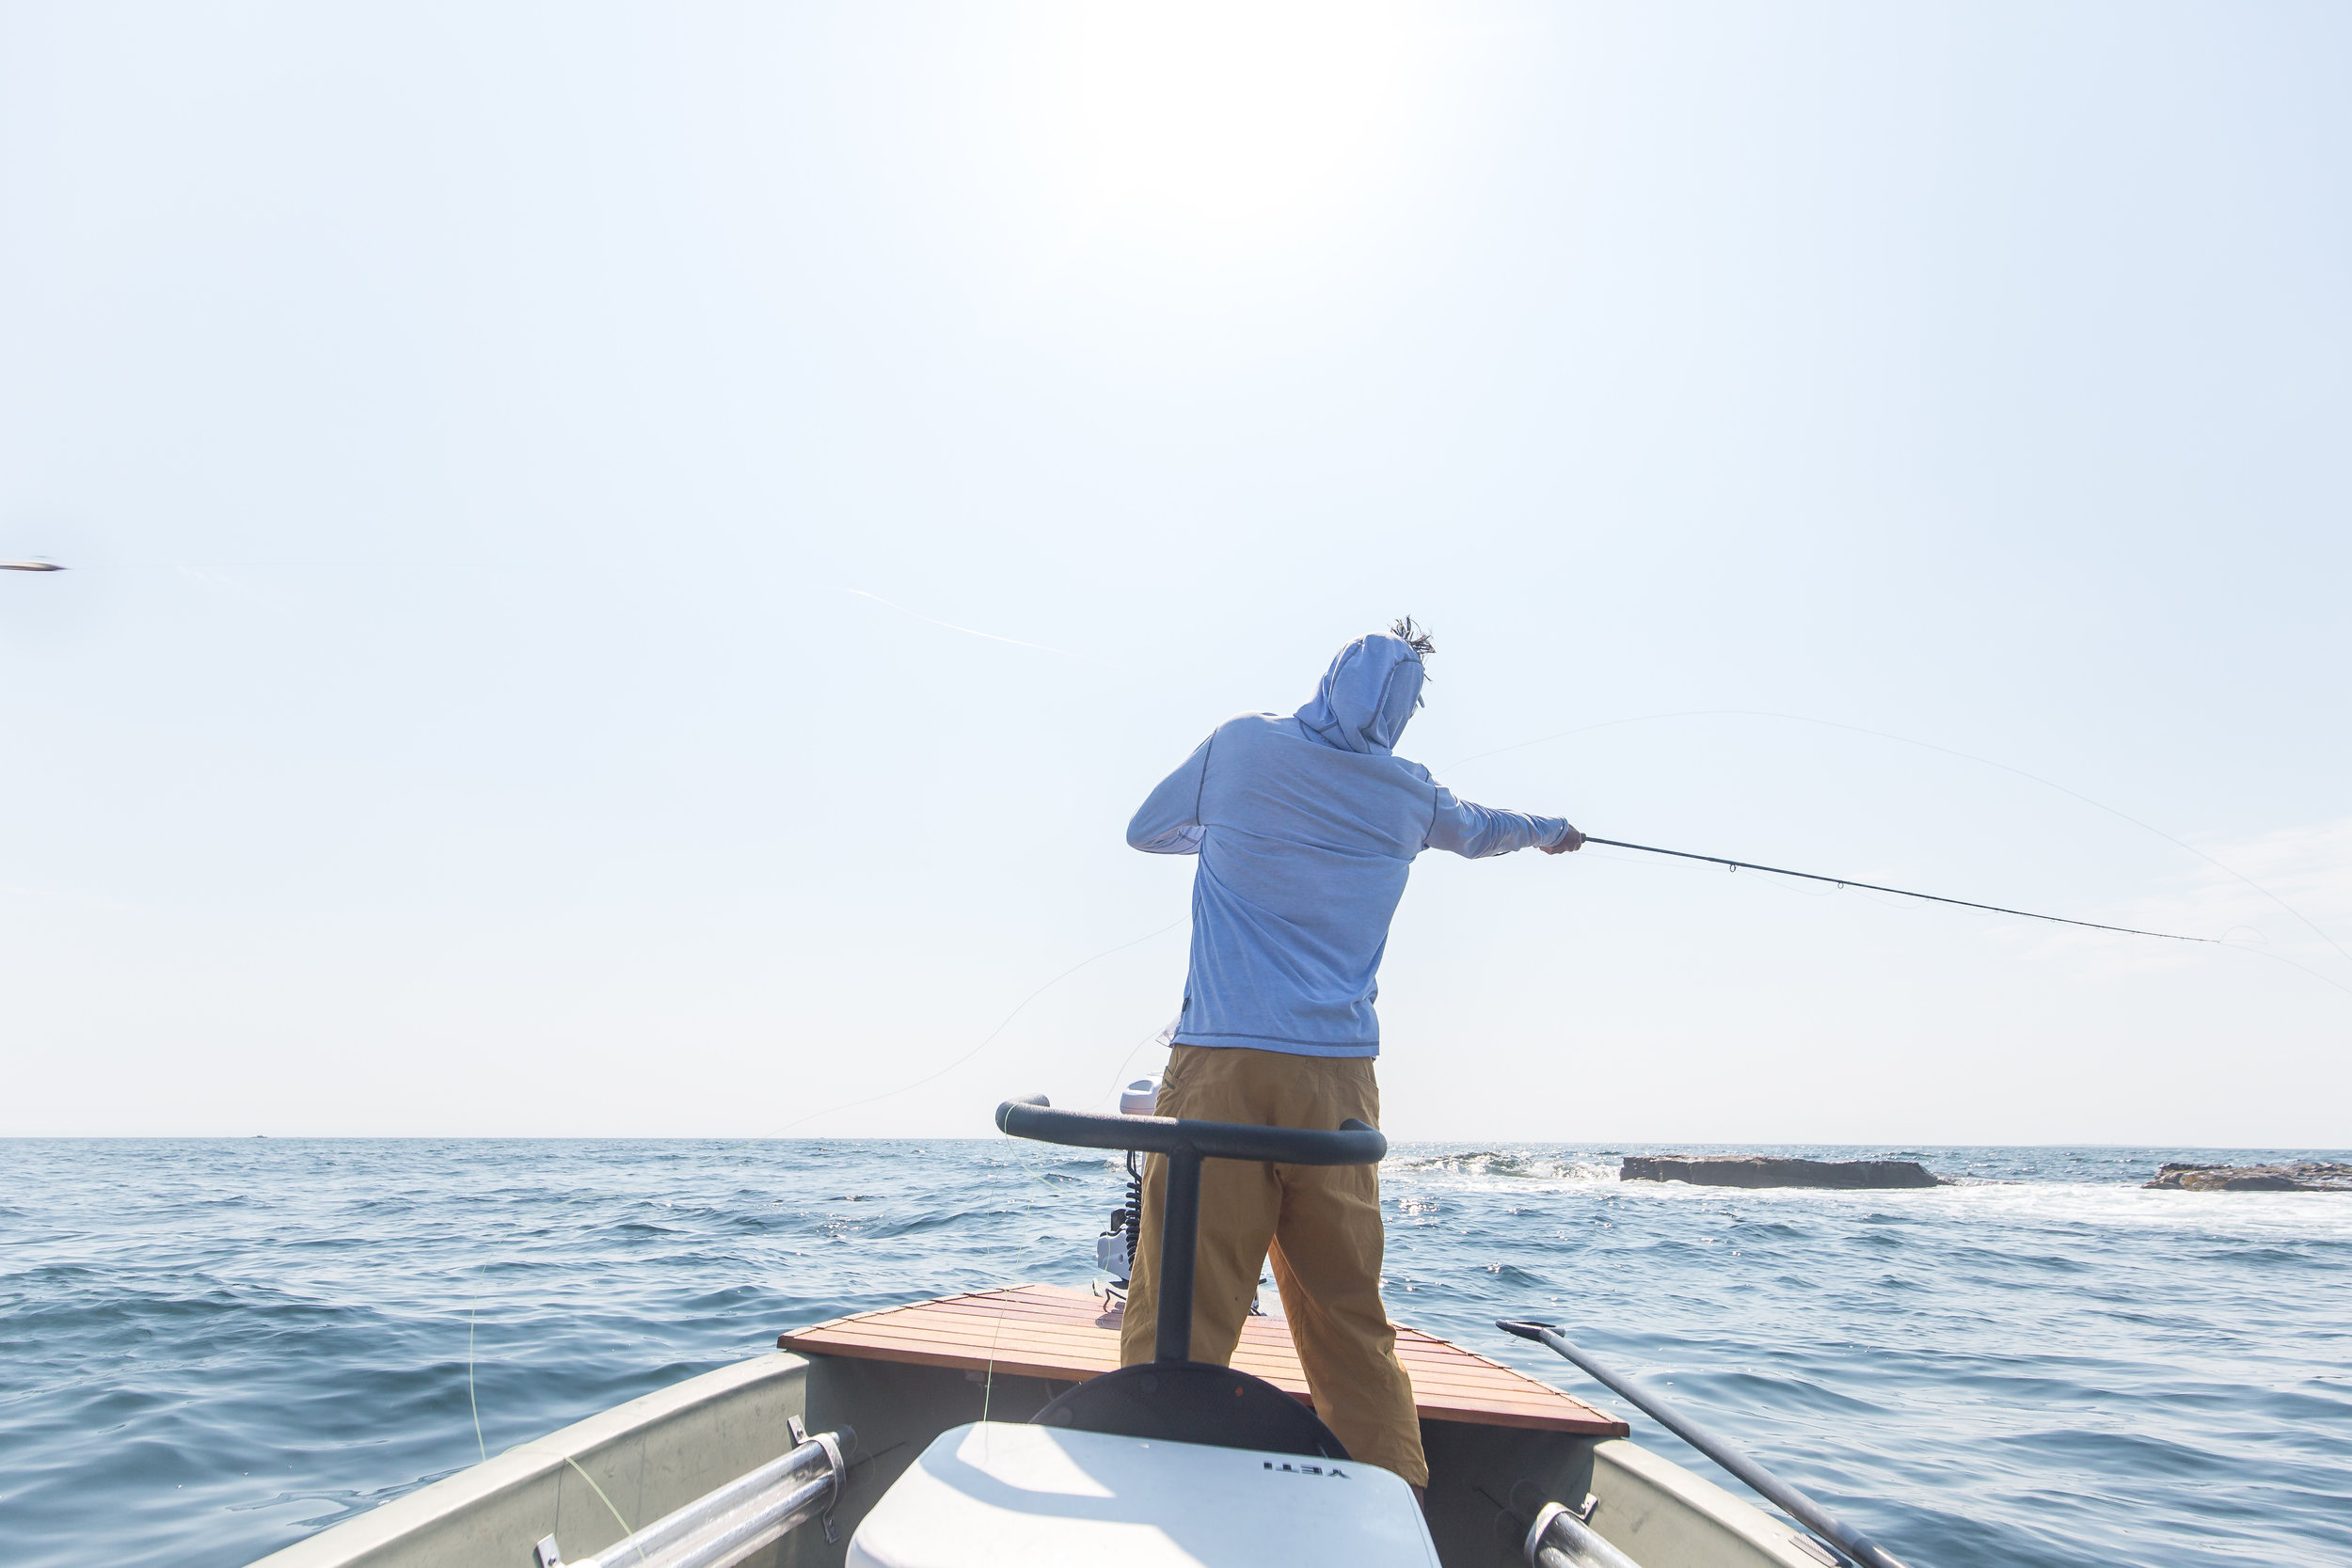 Fishing the rocky coast of Maine, searching for stripers holding in the complex current created by rolling waves and moving tides. Photo: Ben Carmichael